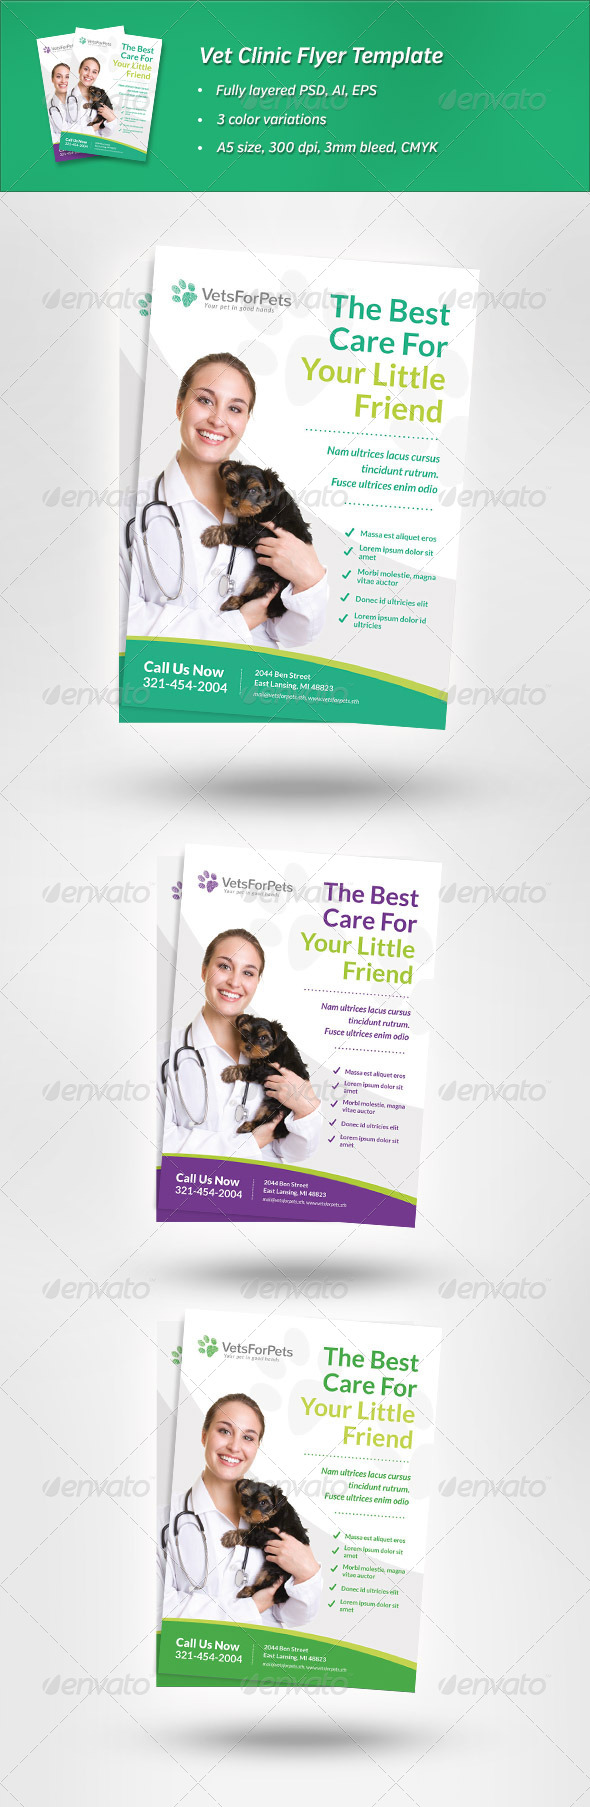 GraphicRiver Vet Clinic Flyer Template 6790951